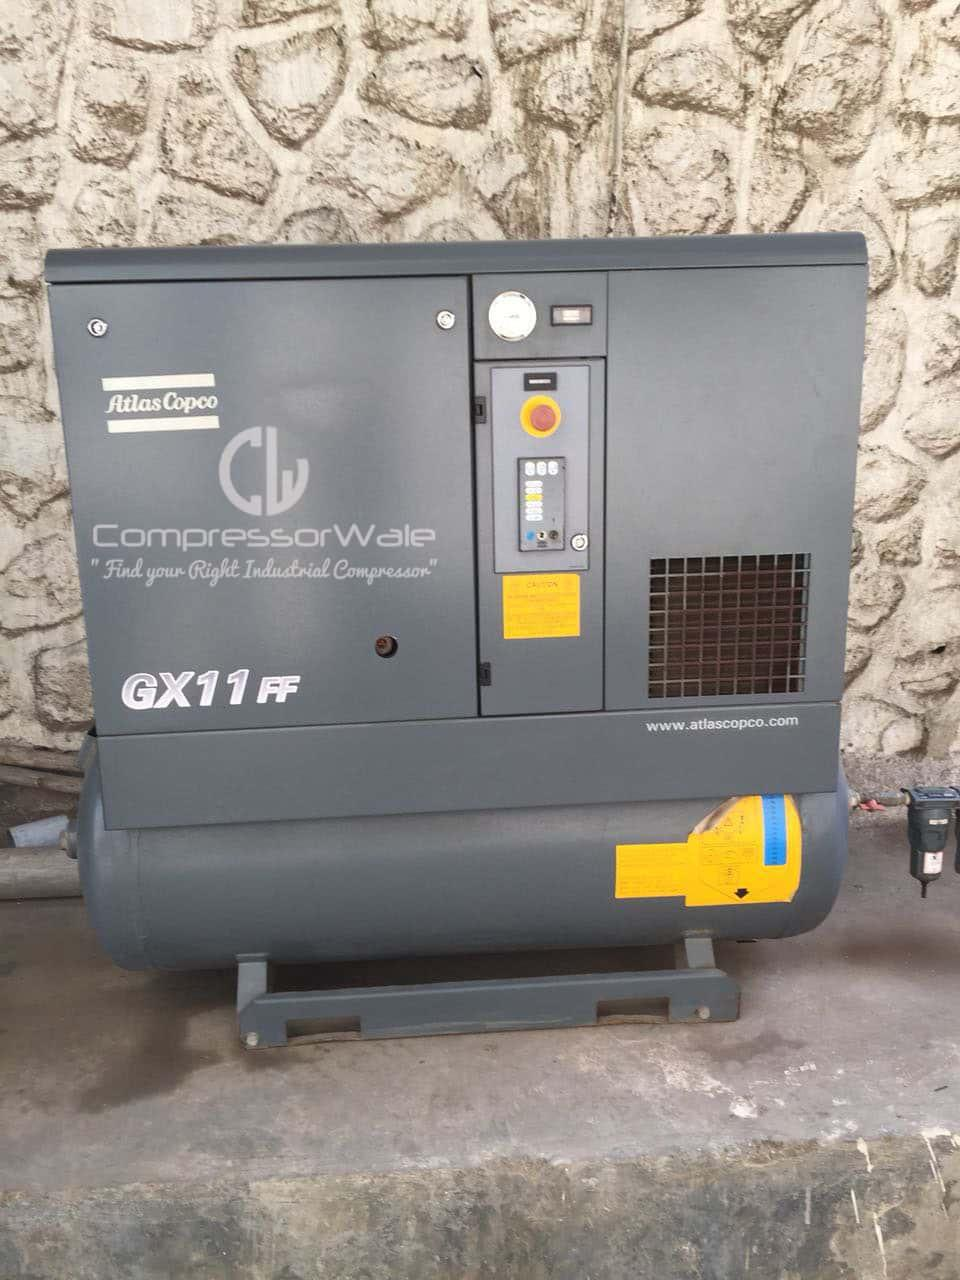 Good as new 2015 year model Atlas Copco GX11 Screw Air compressor with inbuilt dryer and tank mounted